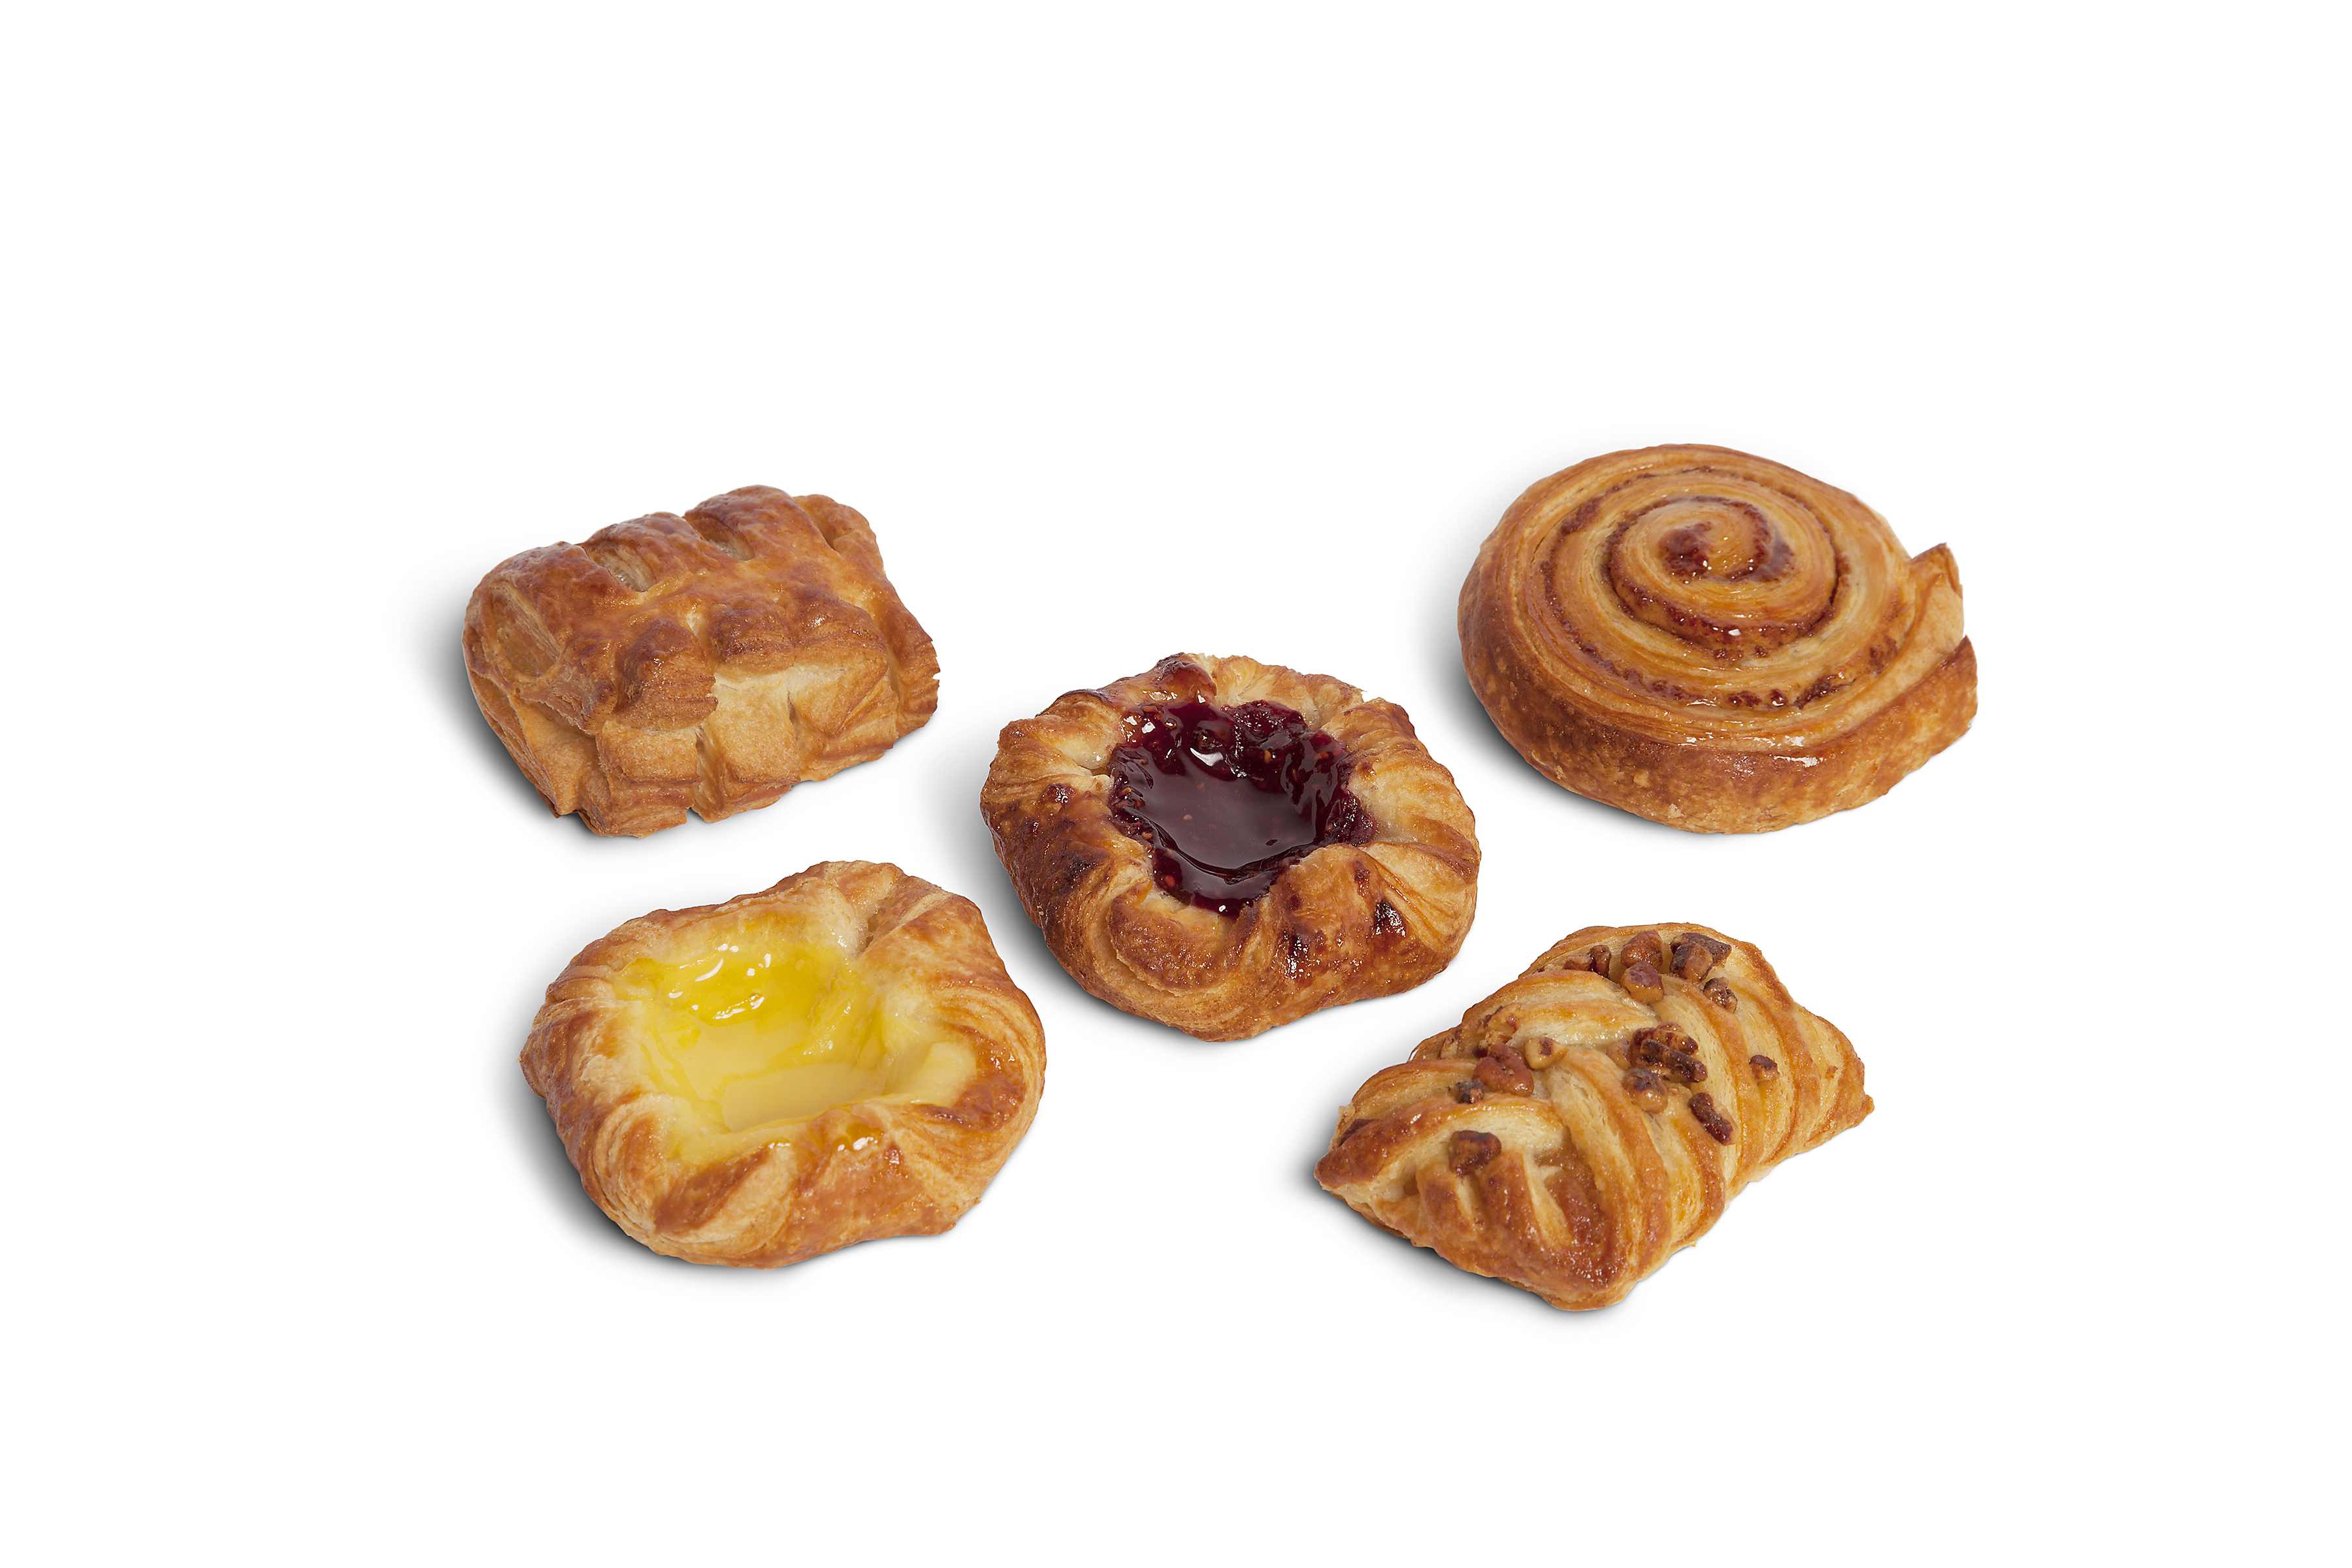 Pastisart presents new proposals in pastries